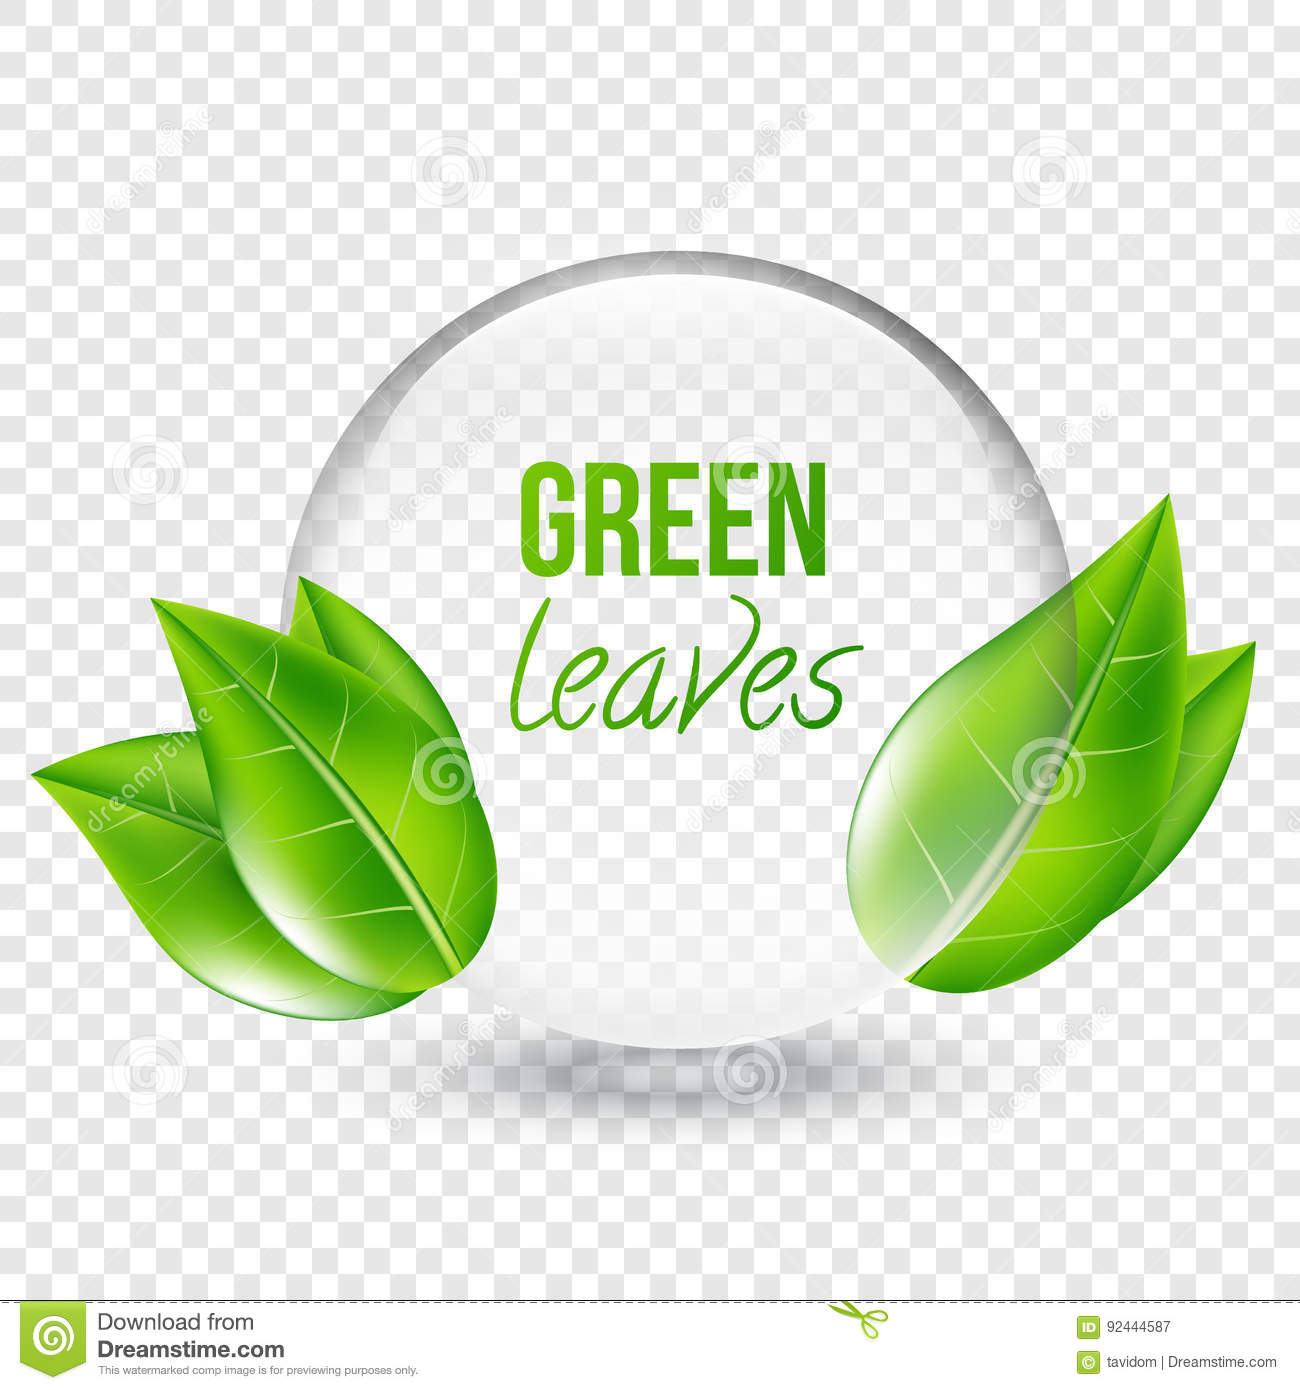 Transparent Shere With Green Leaves For Design Business Cards Vector Illustration On Background